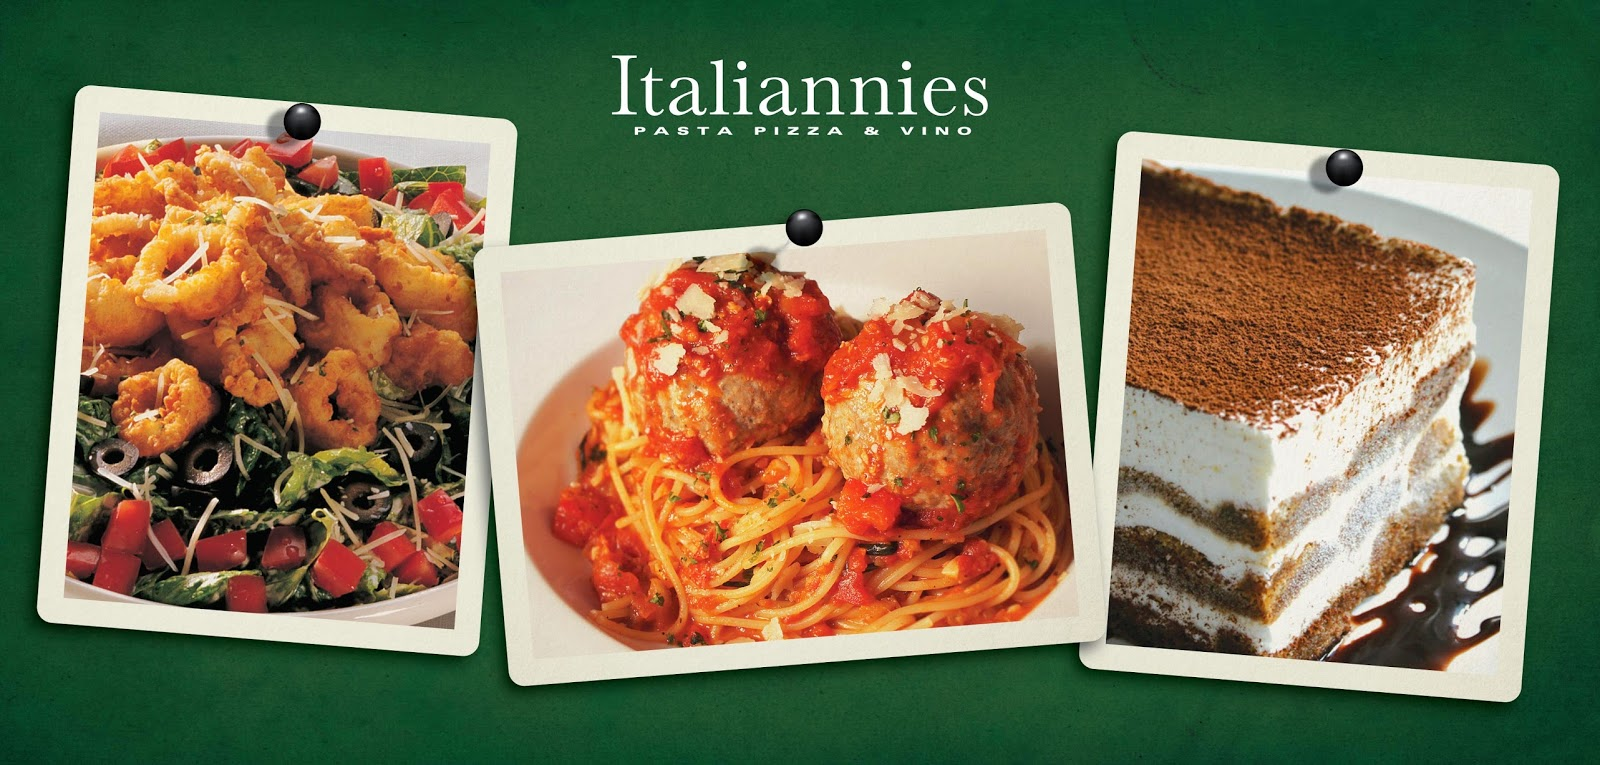 Calamari Caesar, Spaghetti & Meatball and also Tiramisu-  Italiannies Sundown Buffet